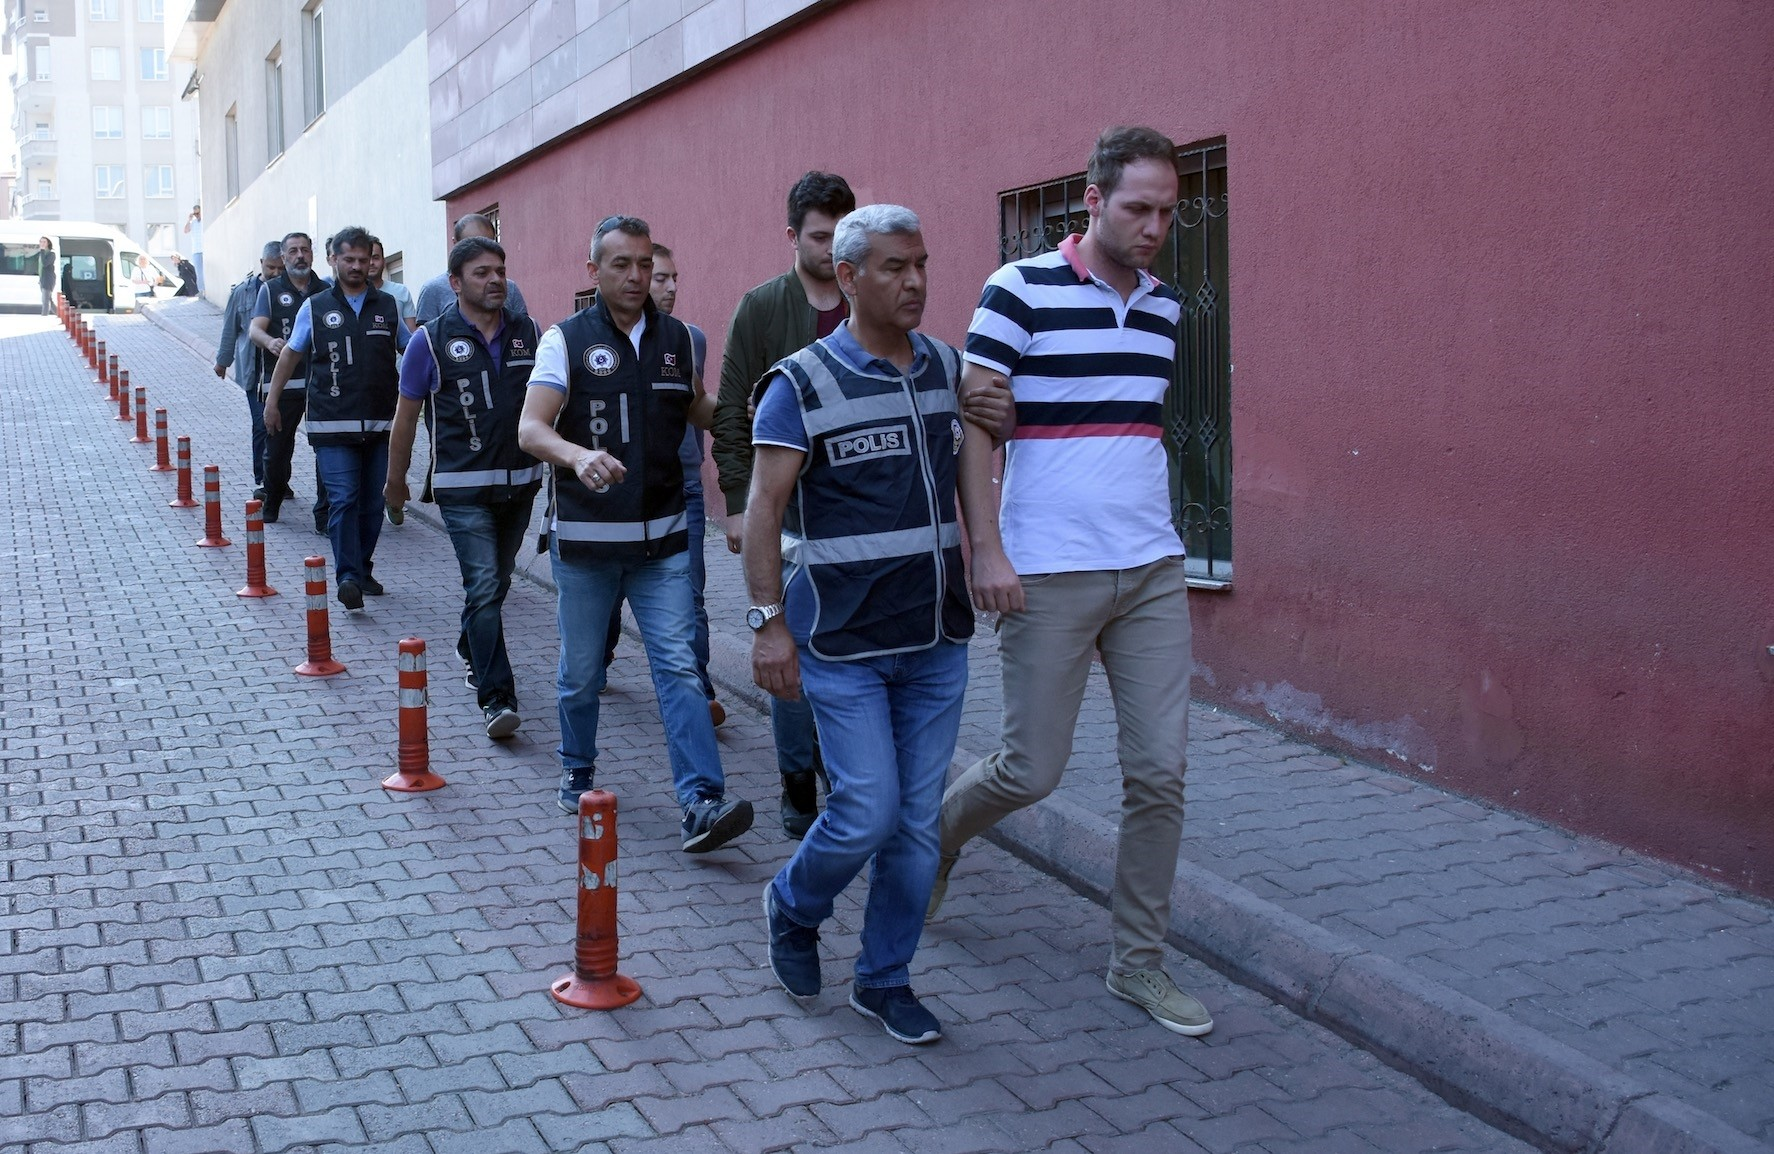 Police escort former military officers linked to FETu00d6 to courthouse in central city of Kayseri. The terrorist group faces almost daily operations after the 2016 coup attempt it is blamed for.